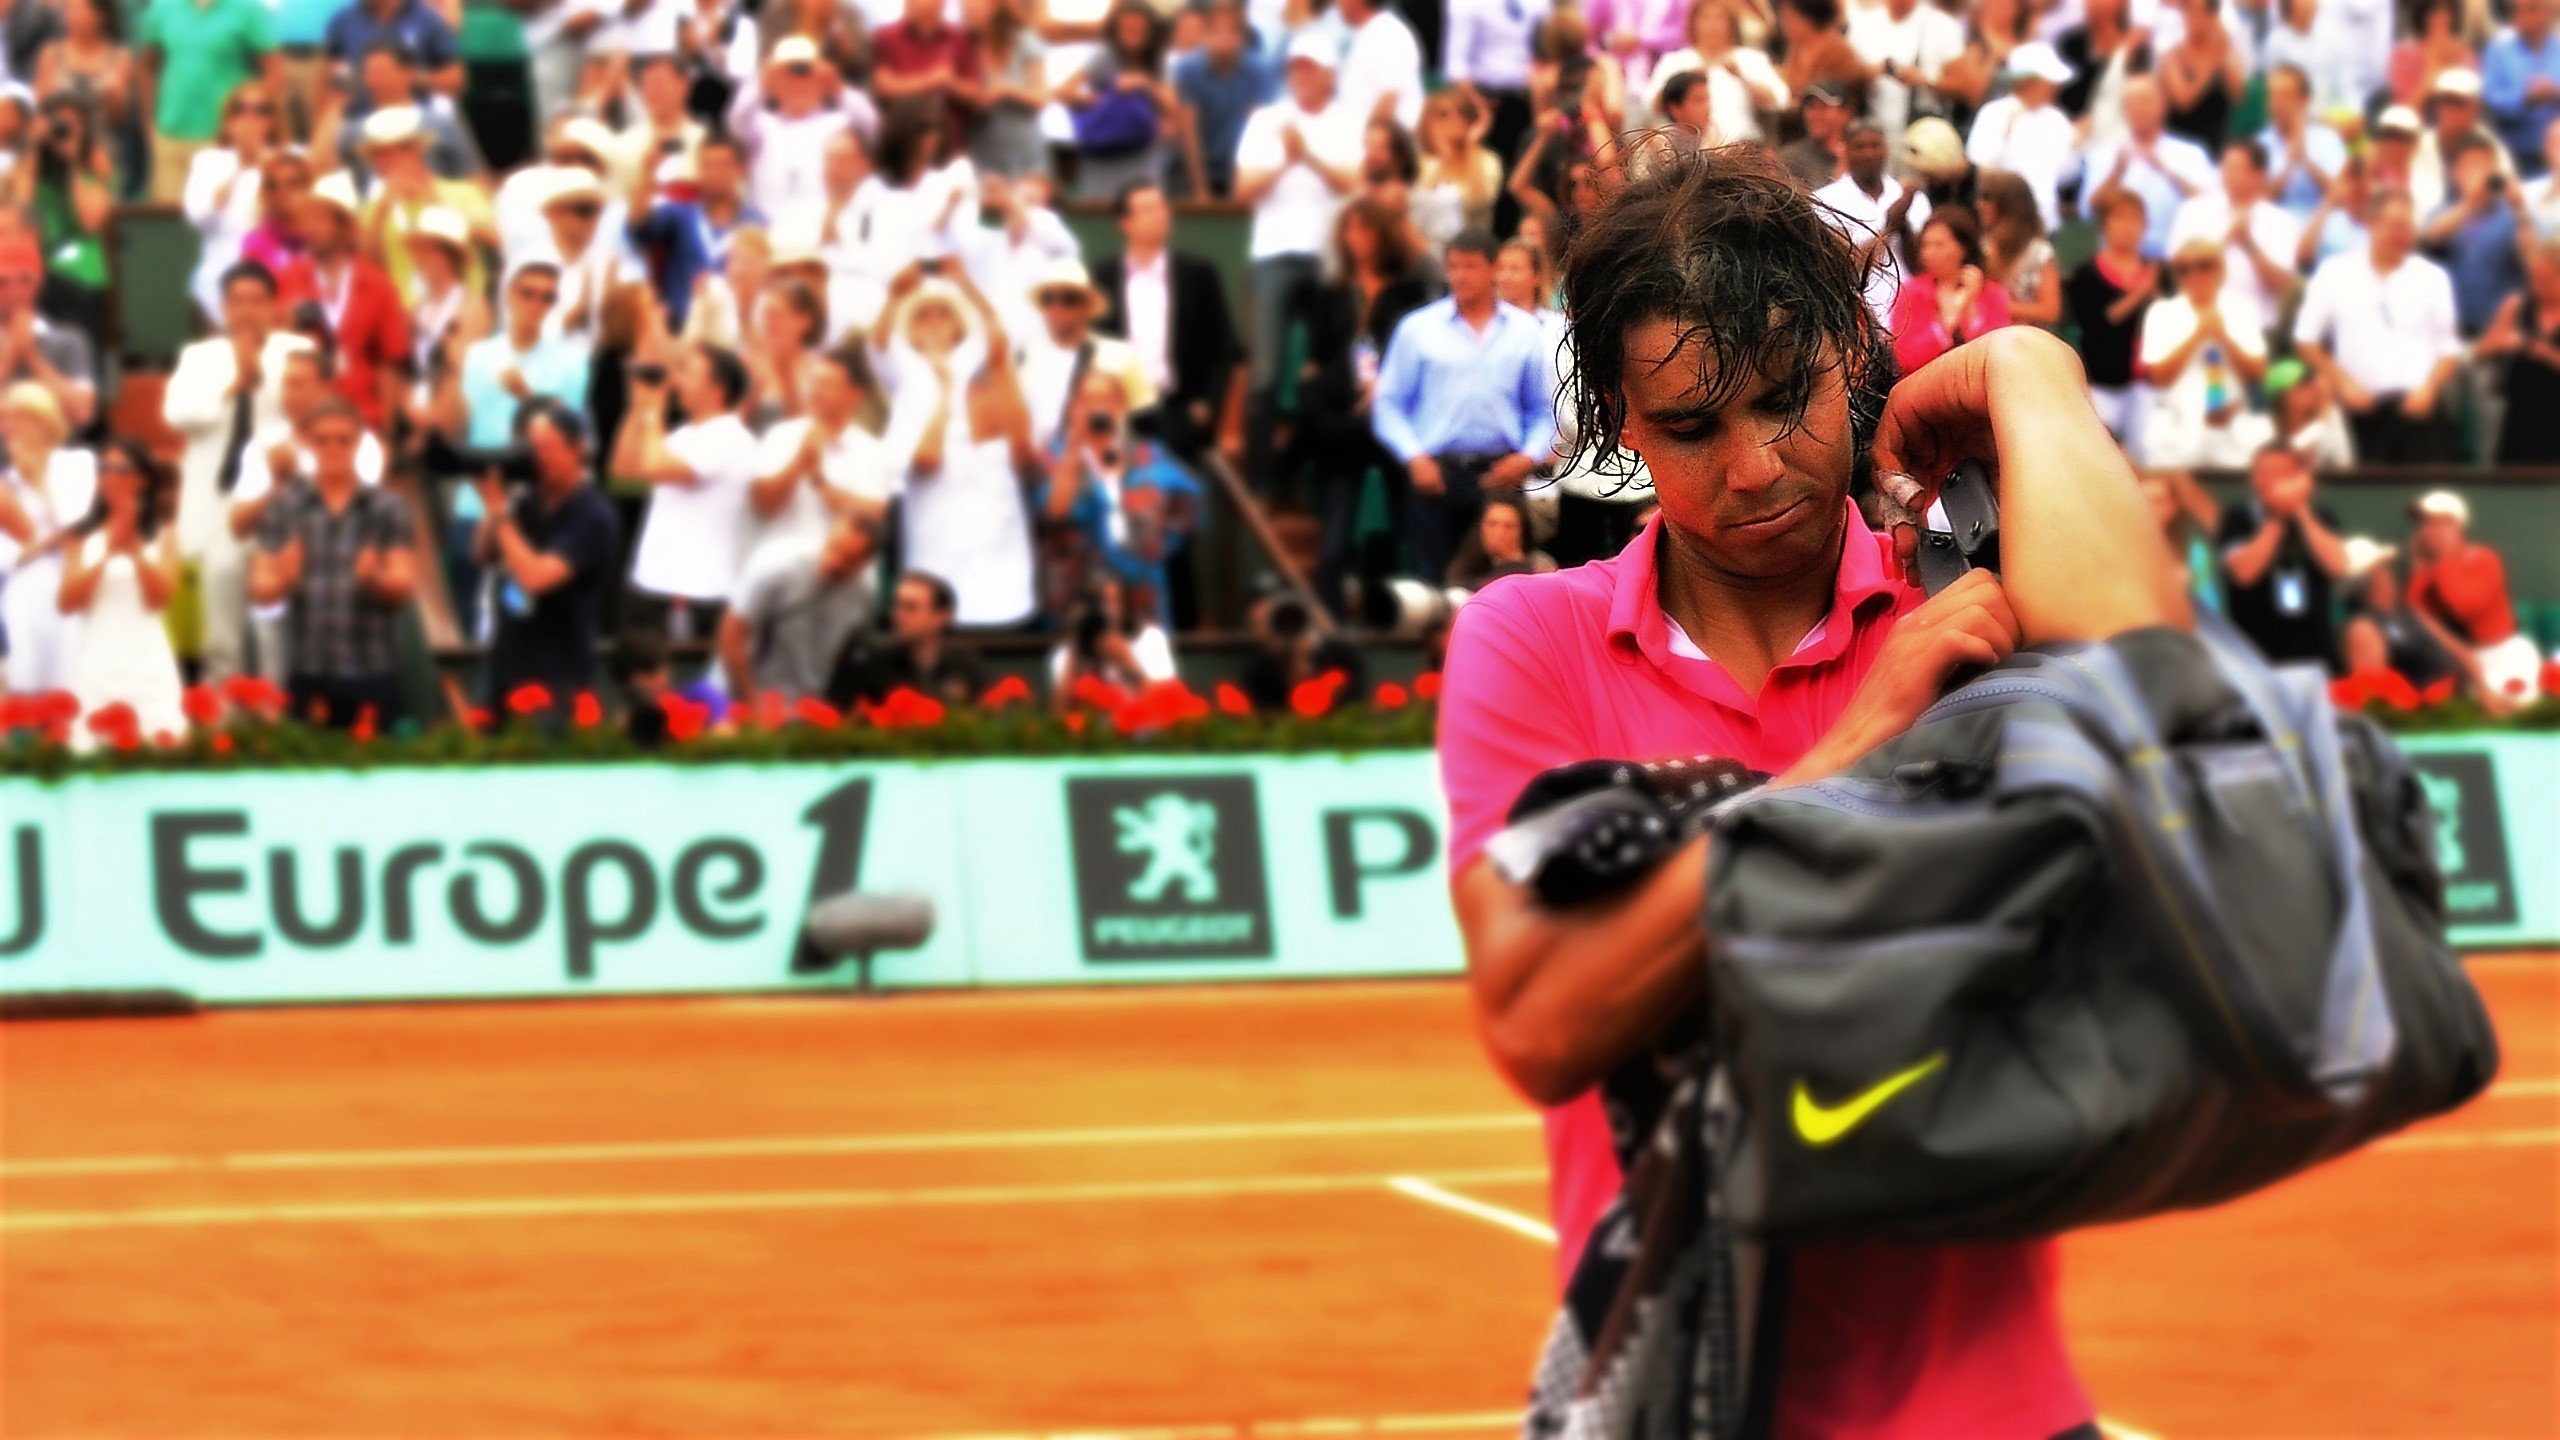 Rafael Nadal leaves the court in 2006 after beating Soderling